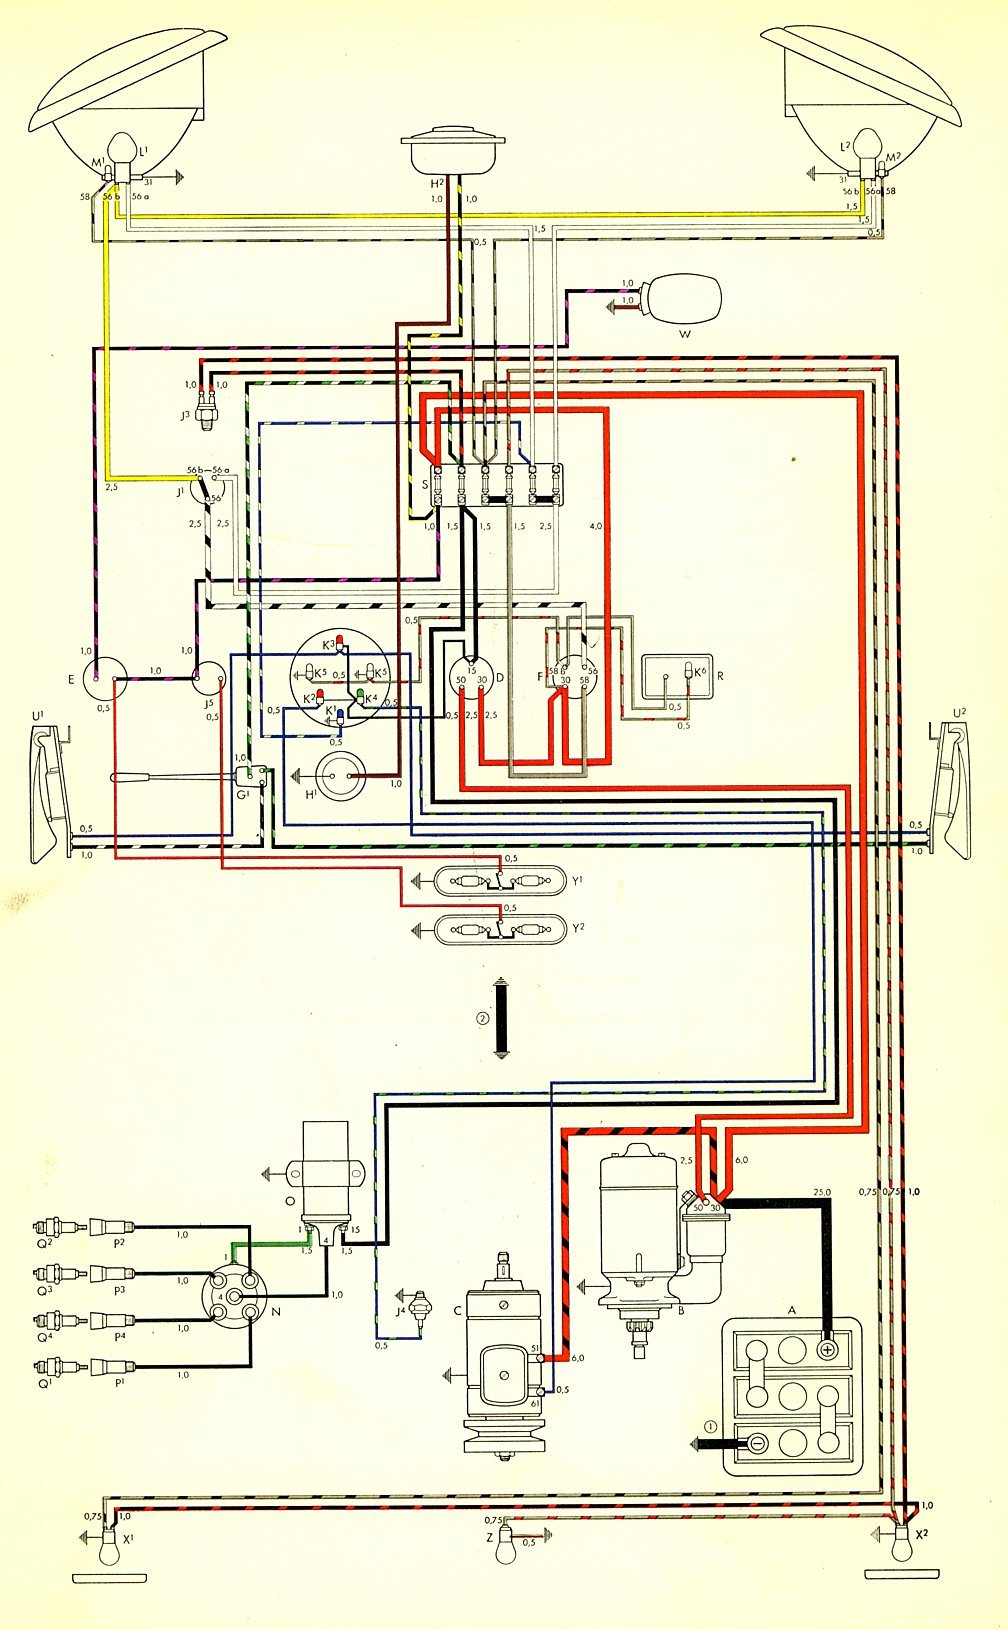 Type 2 Wiring Diagrams 82 Firebird Diagram